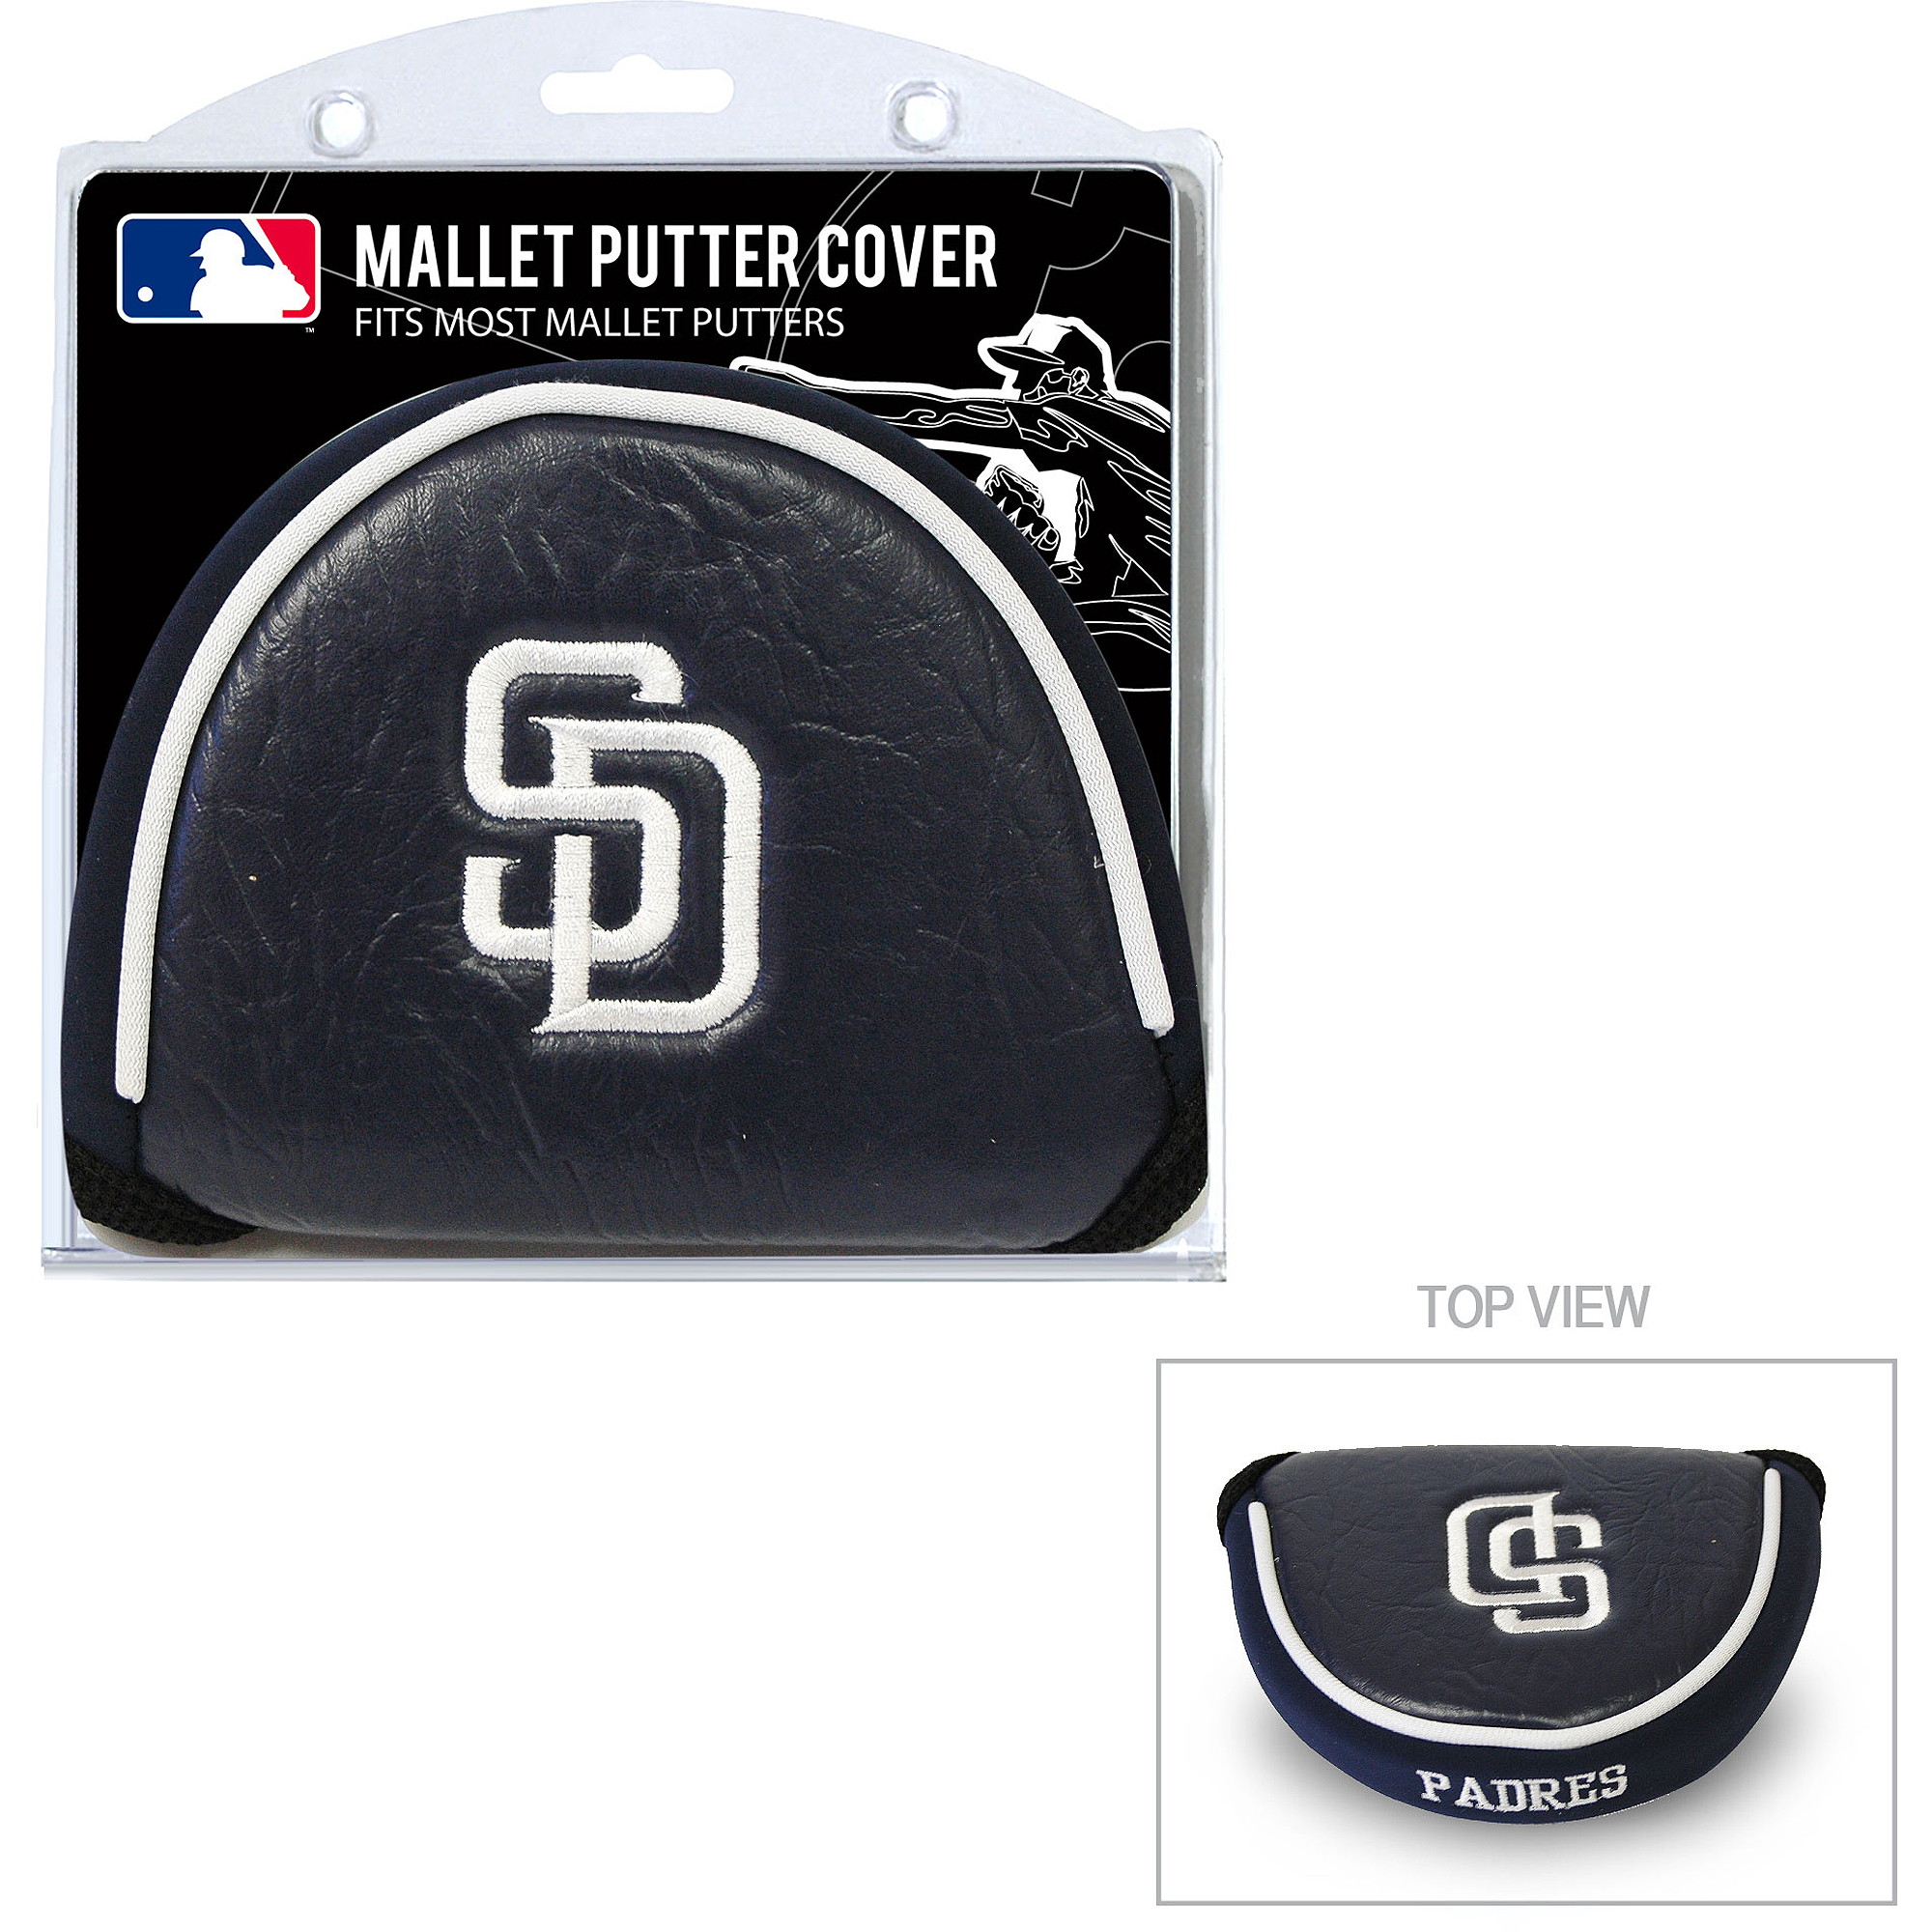 San Diego Padres Mallet Putter Cover